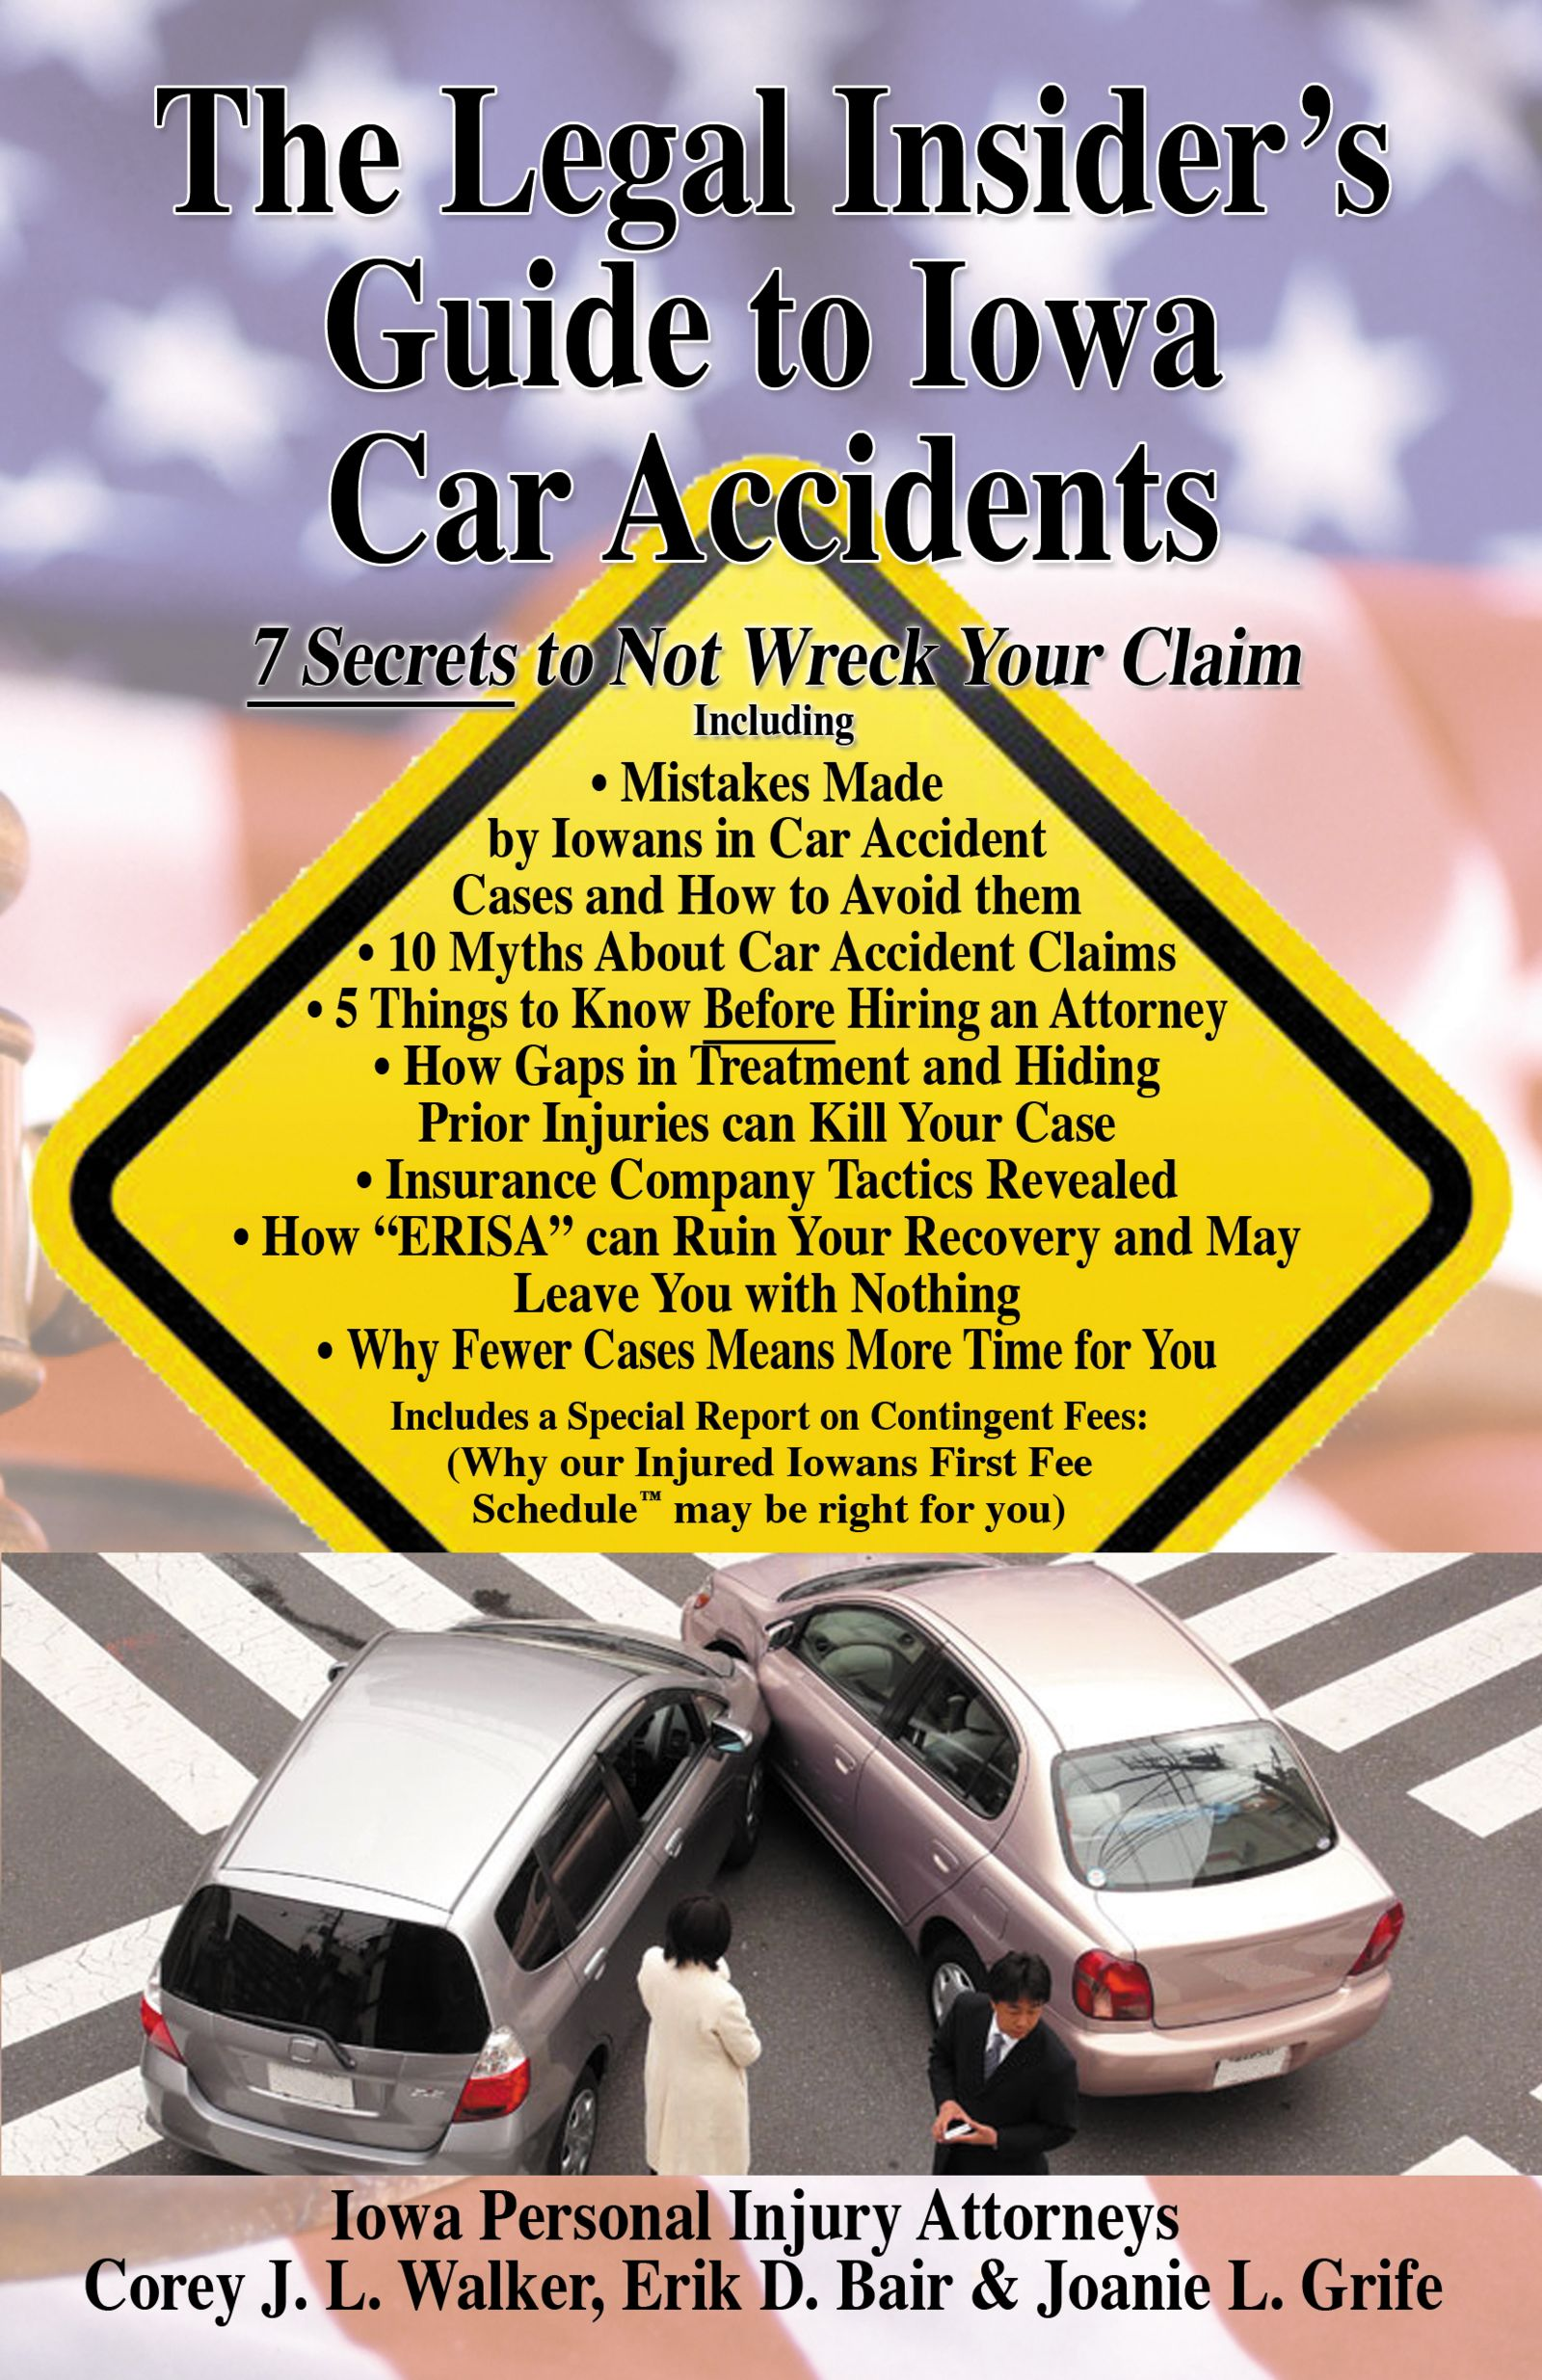 the legal insider's guide to iowa car accidents book written by iowa injury law firm